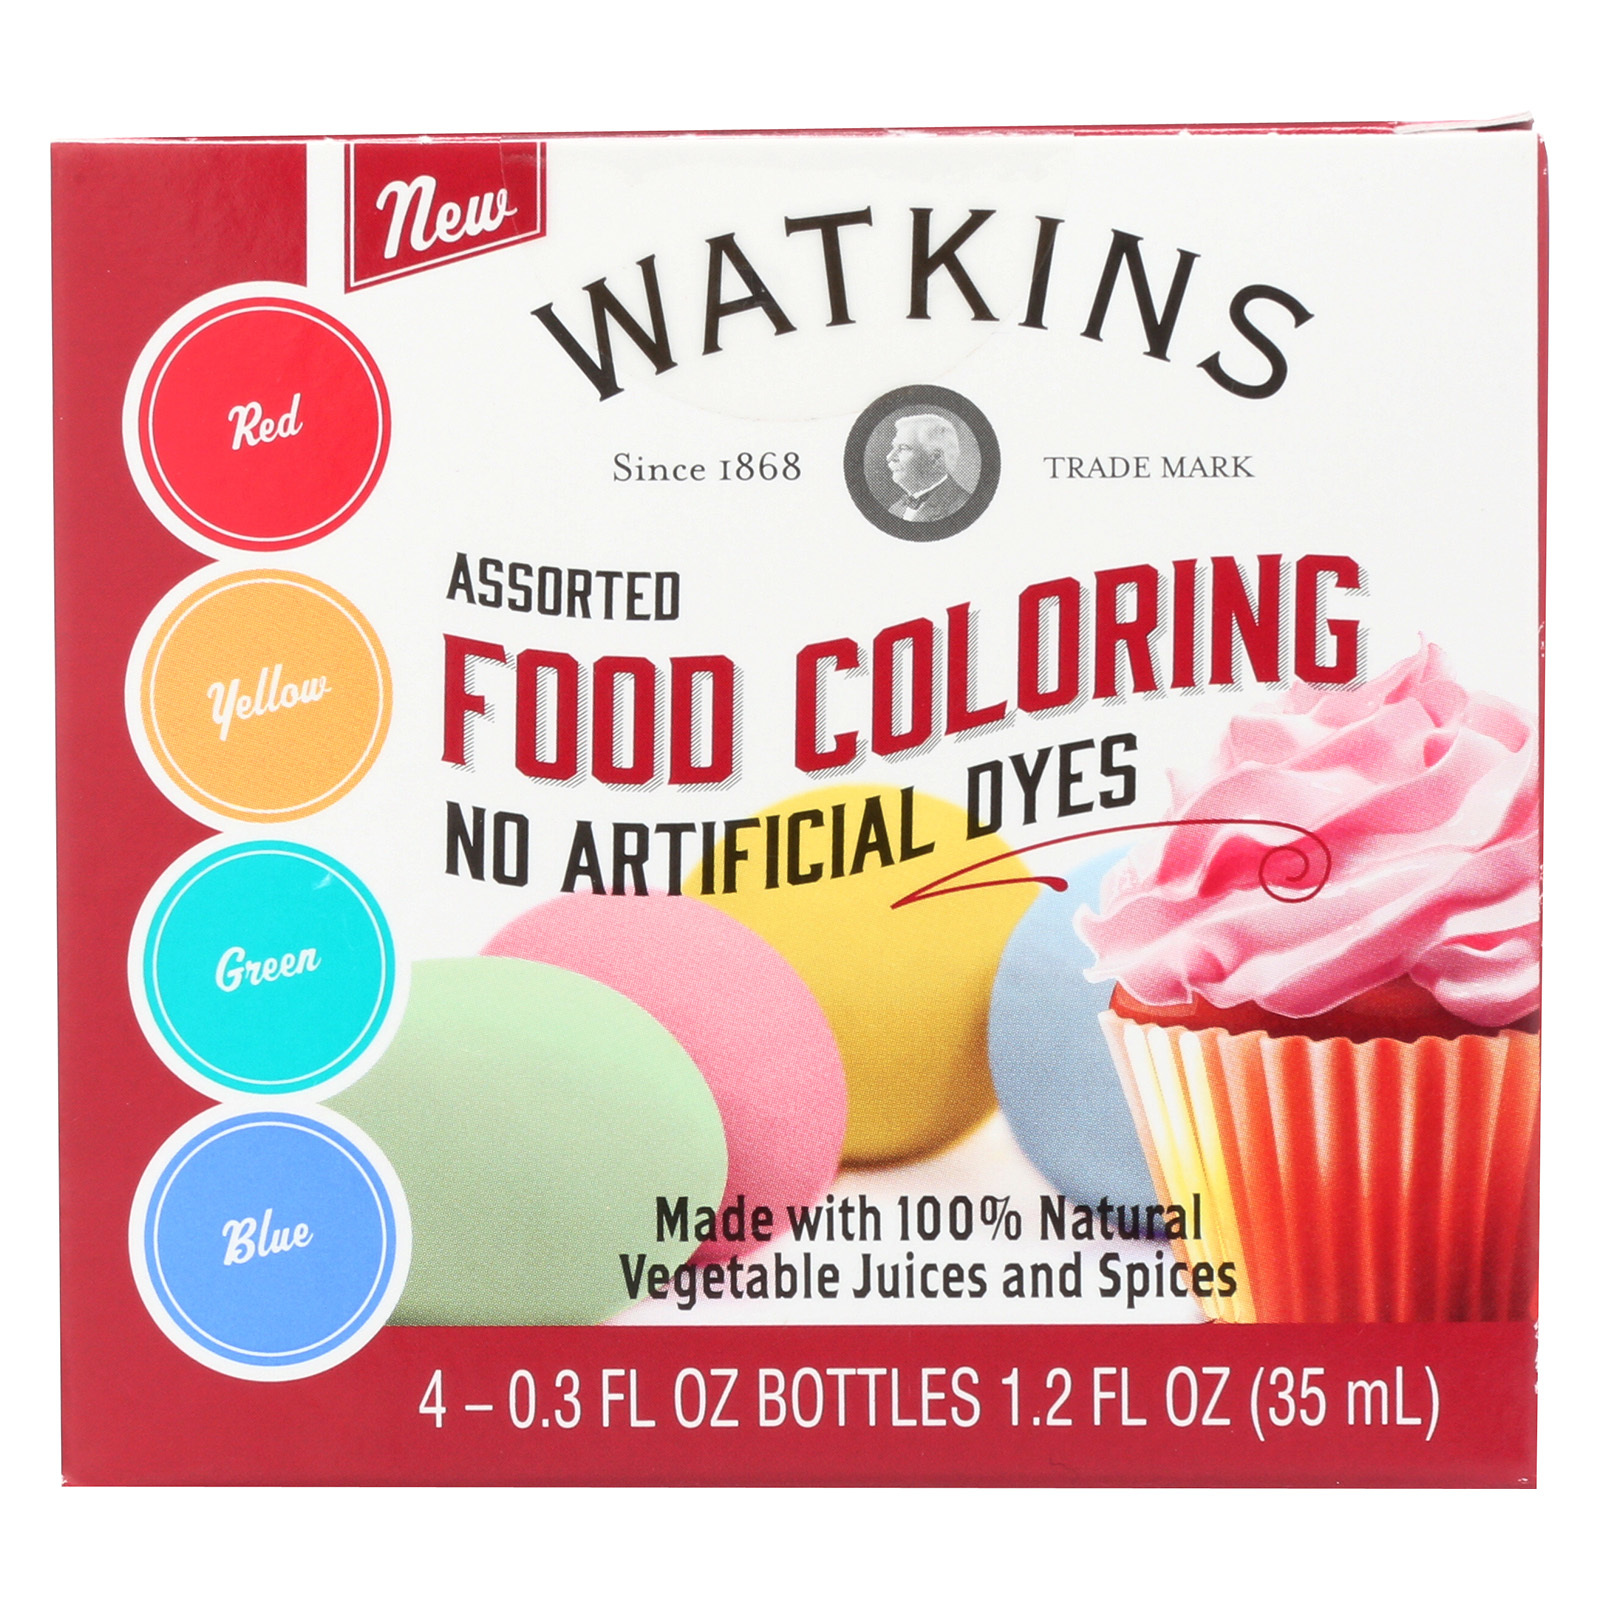 J.R. Watkins Food Coloring - Assorted - Case of 6 - 4 Count